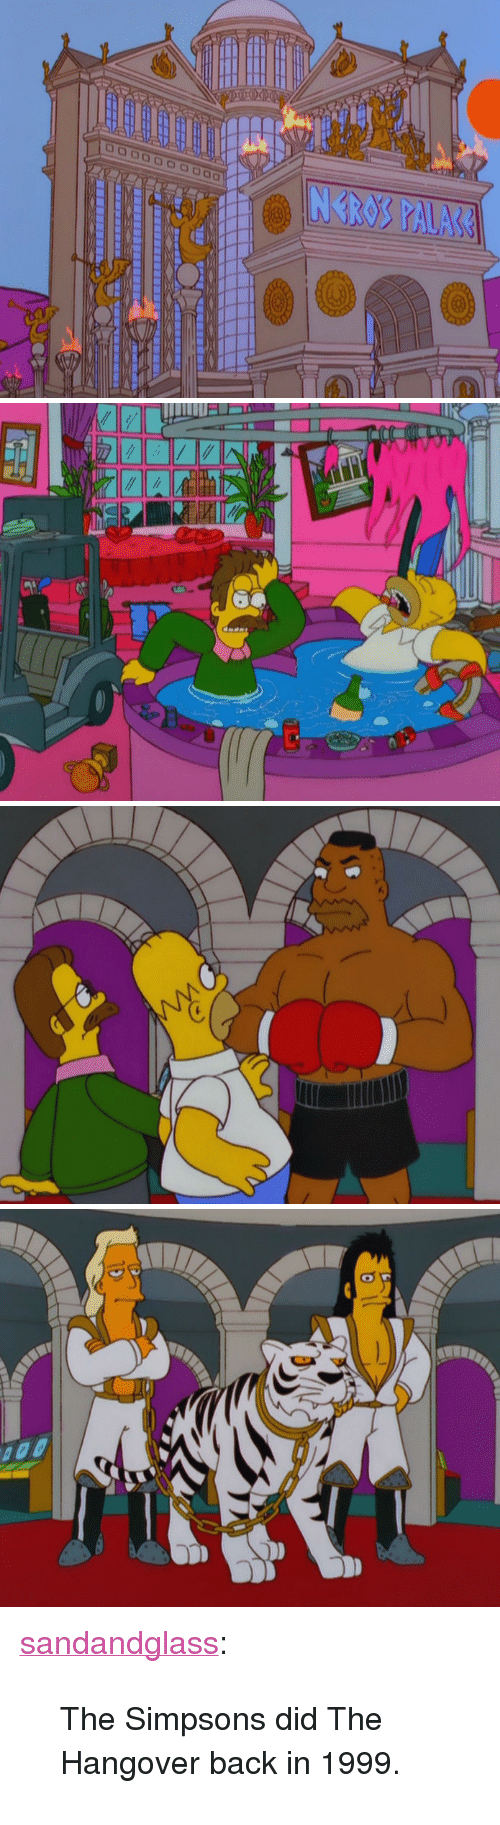 """The Hangover: <p><a class=""""tumblr_blog"""" href=""""http://sandandglass.tumblr.com/post/55601547853"""" target=""""_blank"""">sandandglass</a>:</p> <blockquote> <p>The Simpsons did The Hangover back in 1999.</p> </blockquote>"""